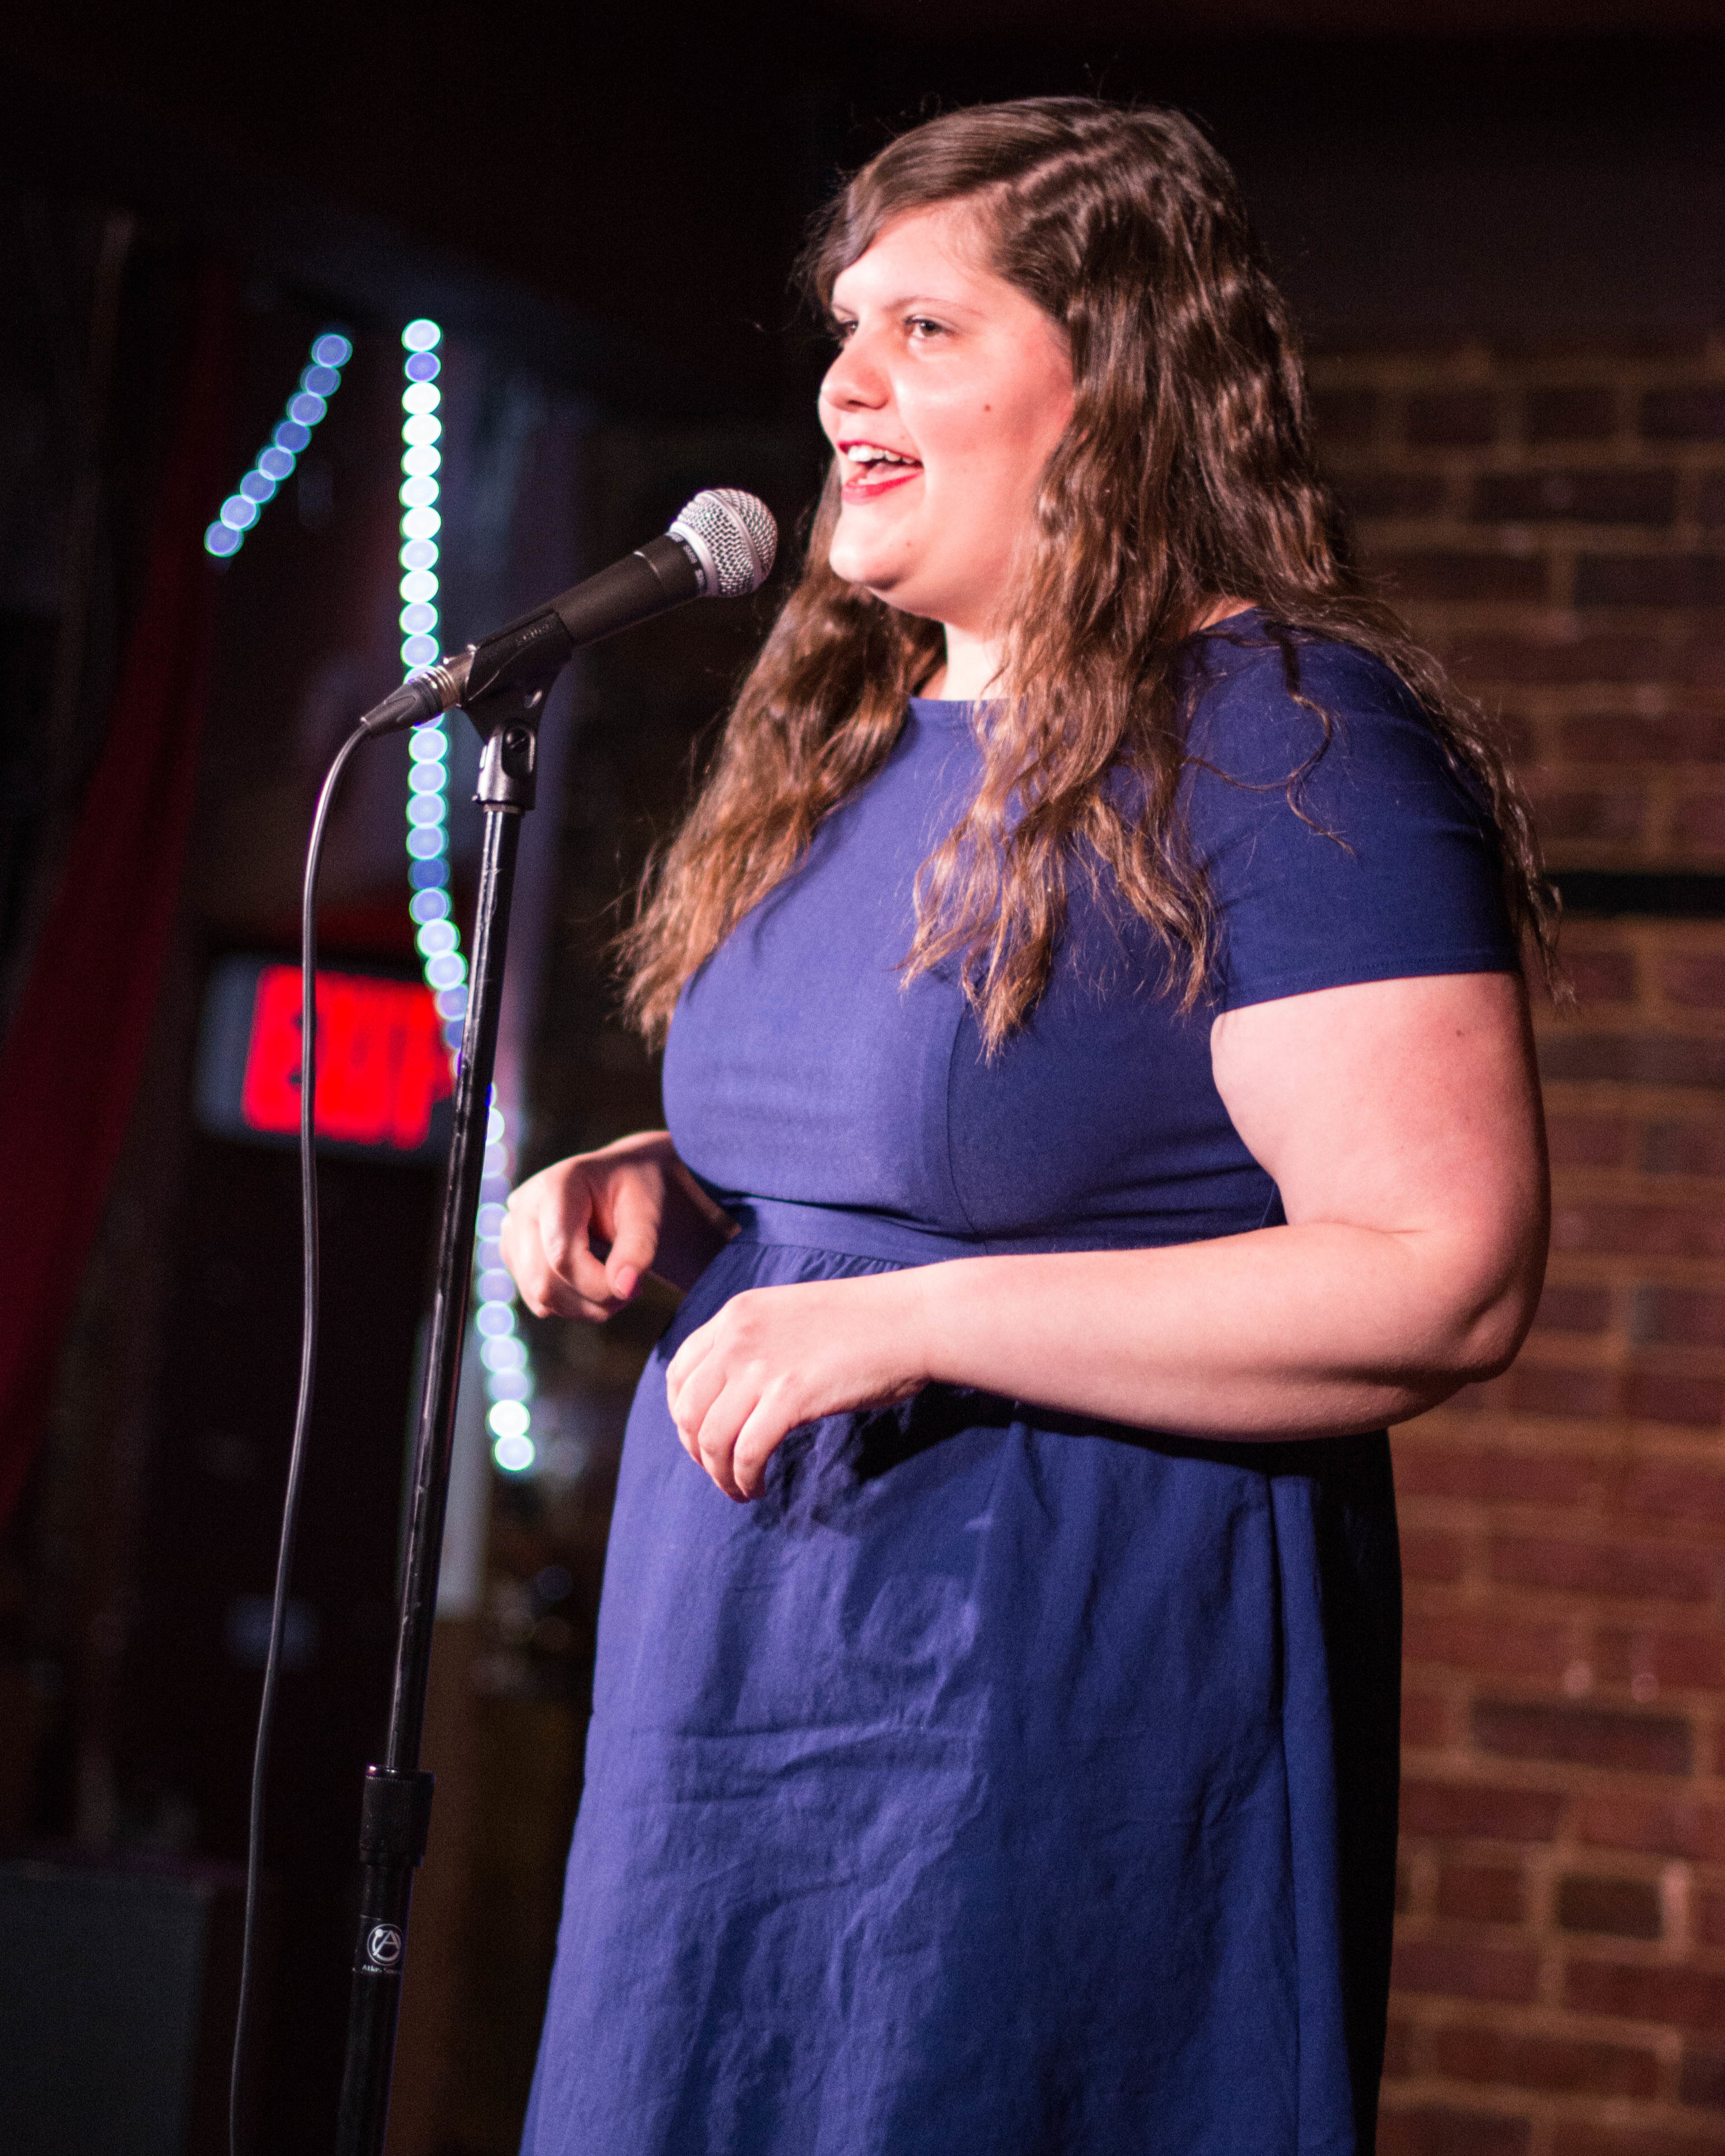 Jenn Montooth shares her story with the Story Collider audience at the Beir Baron Tavern in Washington, DC in June 2019. Photo by Lauren Lipuma.